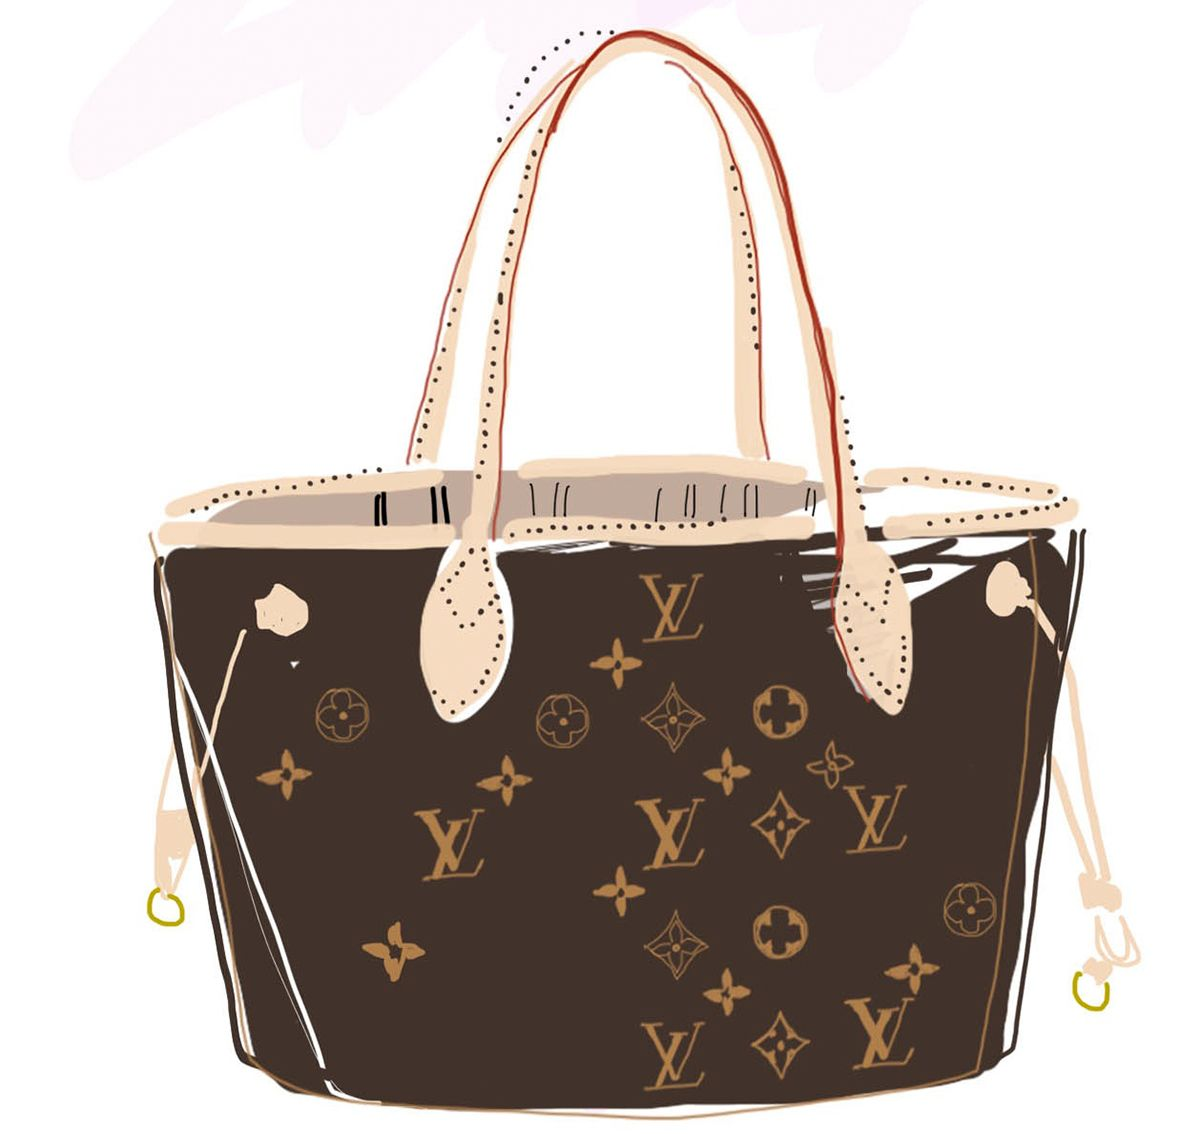 Louis Vuitton Neverfull Die Ultimative Mom Bag Fafine